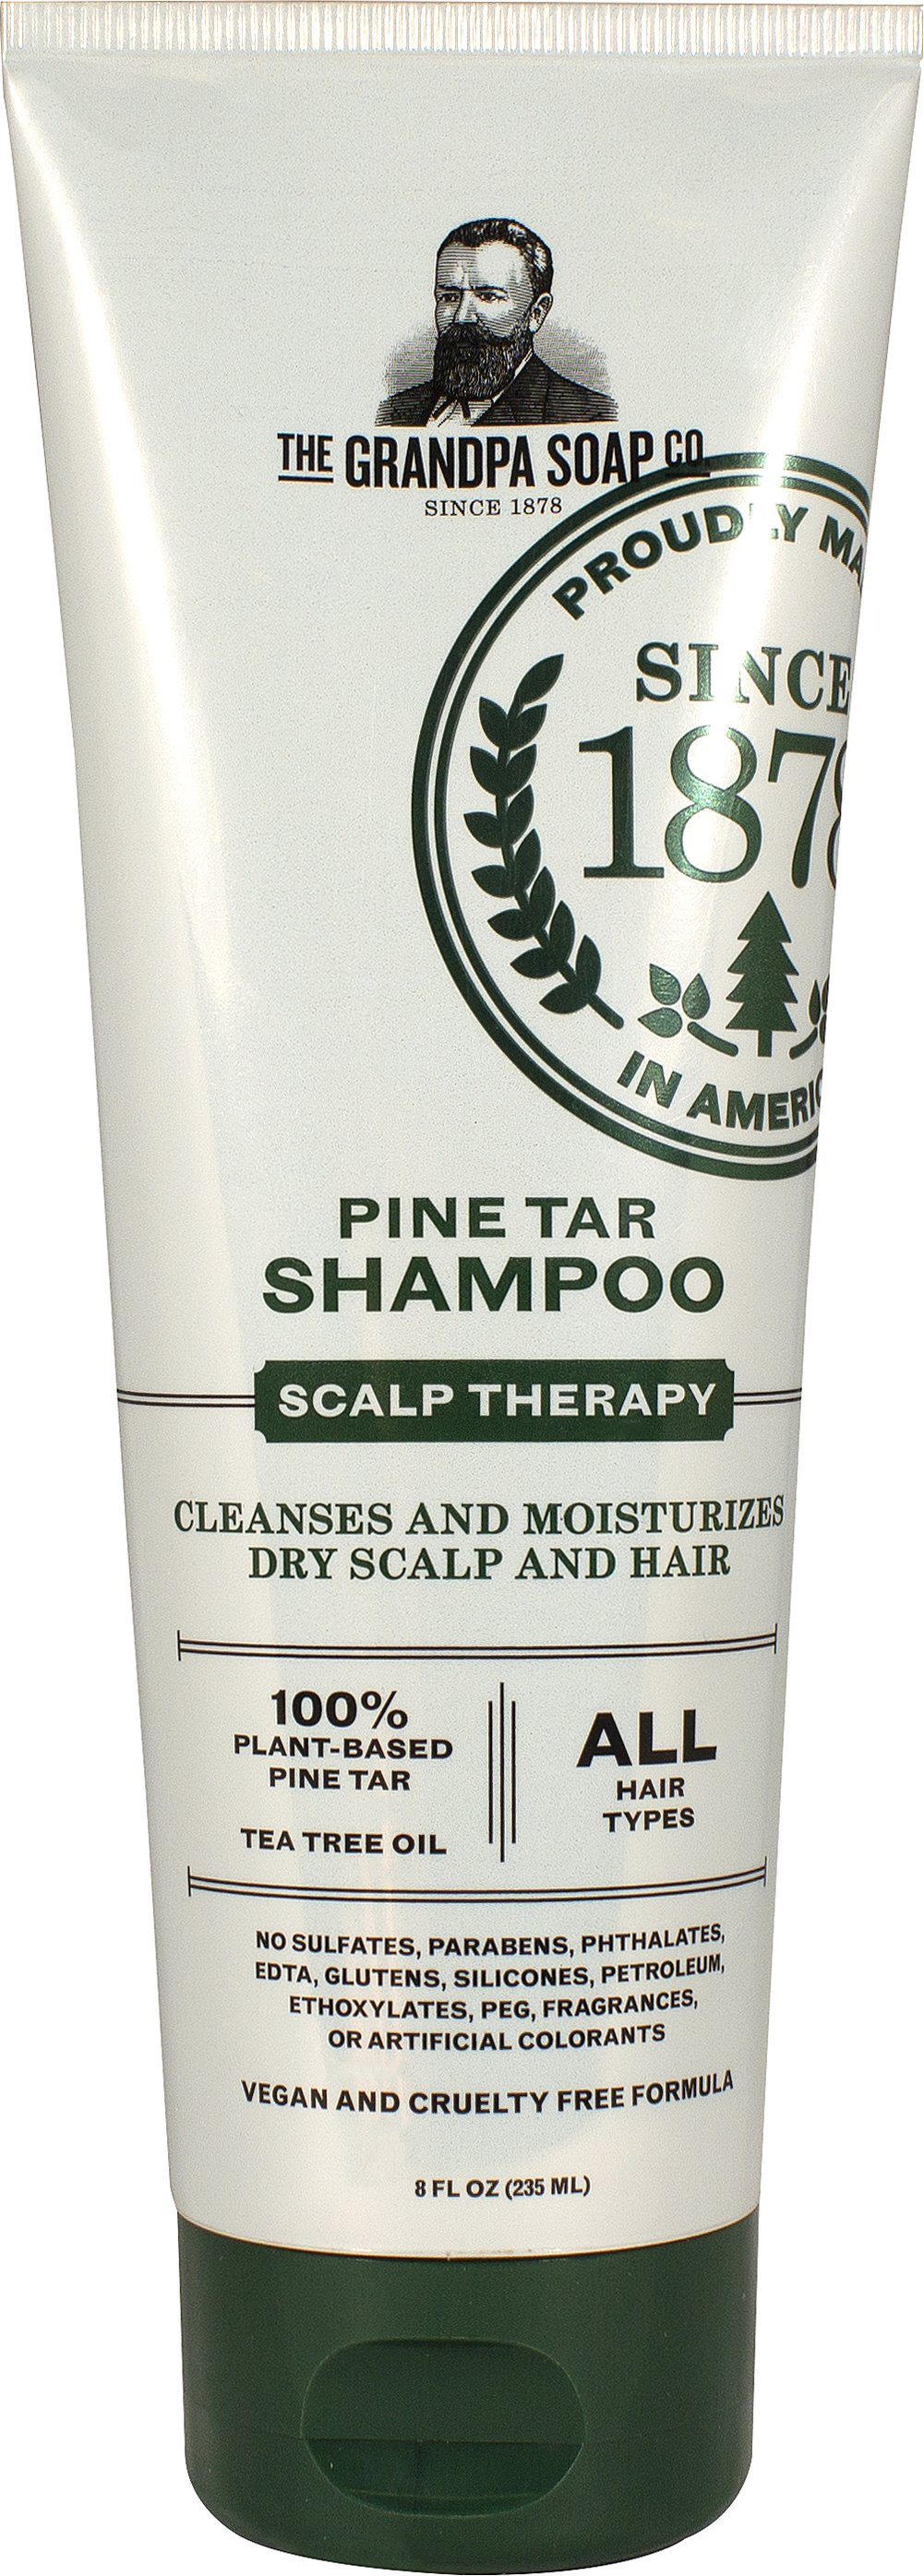 Pine Tar Shampoo <p><strong>From the Manufacturer's Label</strong></p><p>Helps to Remove Flakes of Dandruff, Seborrhea & Psoriasis</p><p>Manufactured by Grandps's.</p> 8 fl oz Shampoo  $9.99